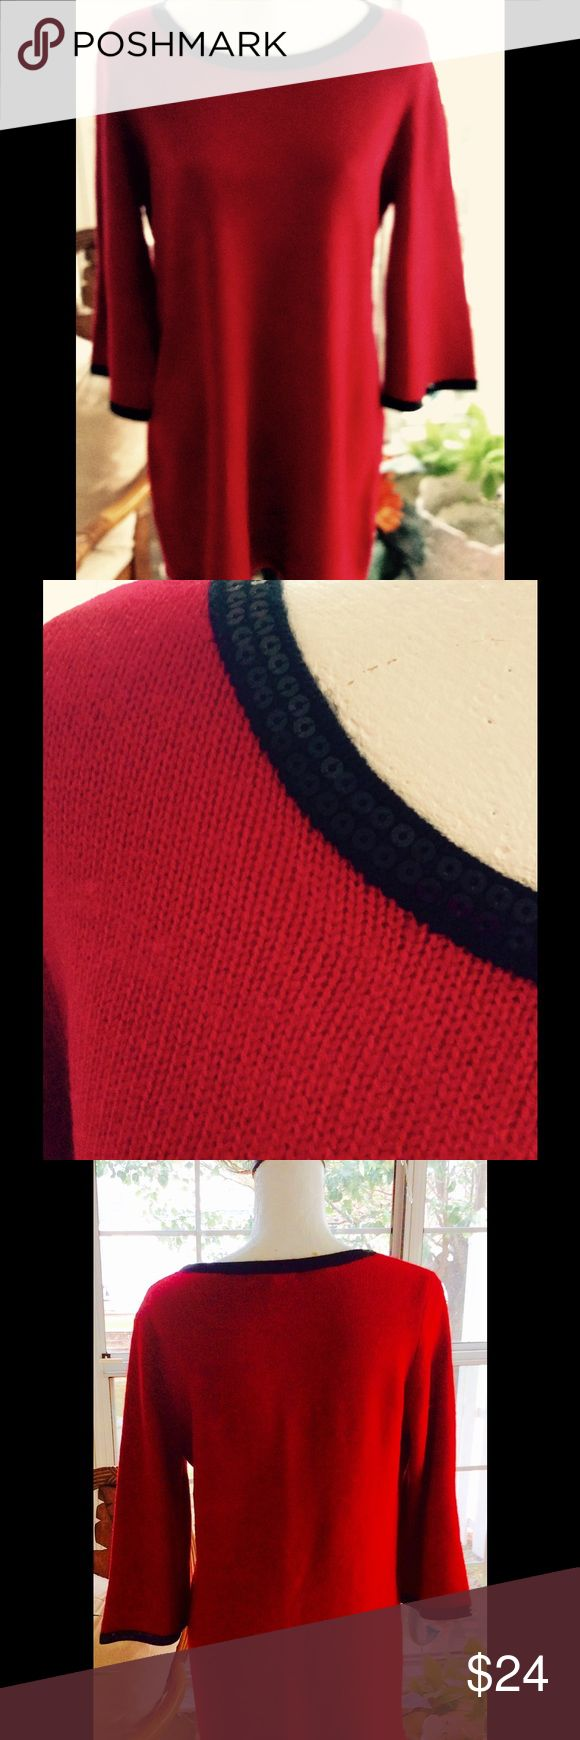 Tunic/Dress Beautiful red tunic/dress with black sequins on collar and cuffs.  This can be worn as a dress depending on your height.  Very nice sweater and dressy for a holiday event. Style & Co Tops Tunics